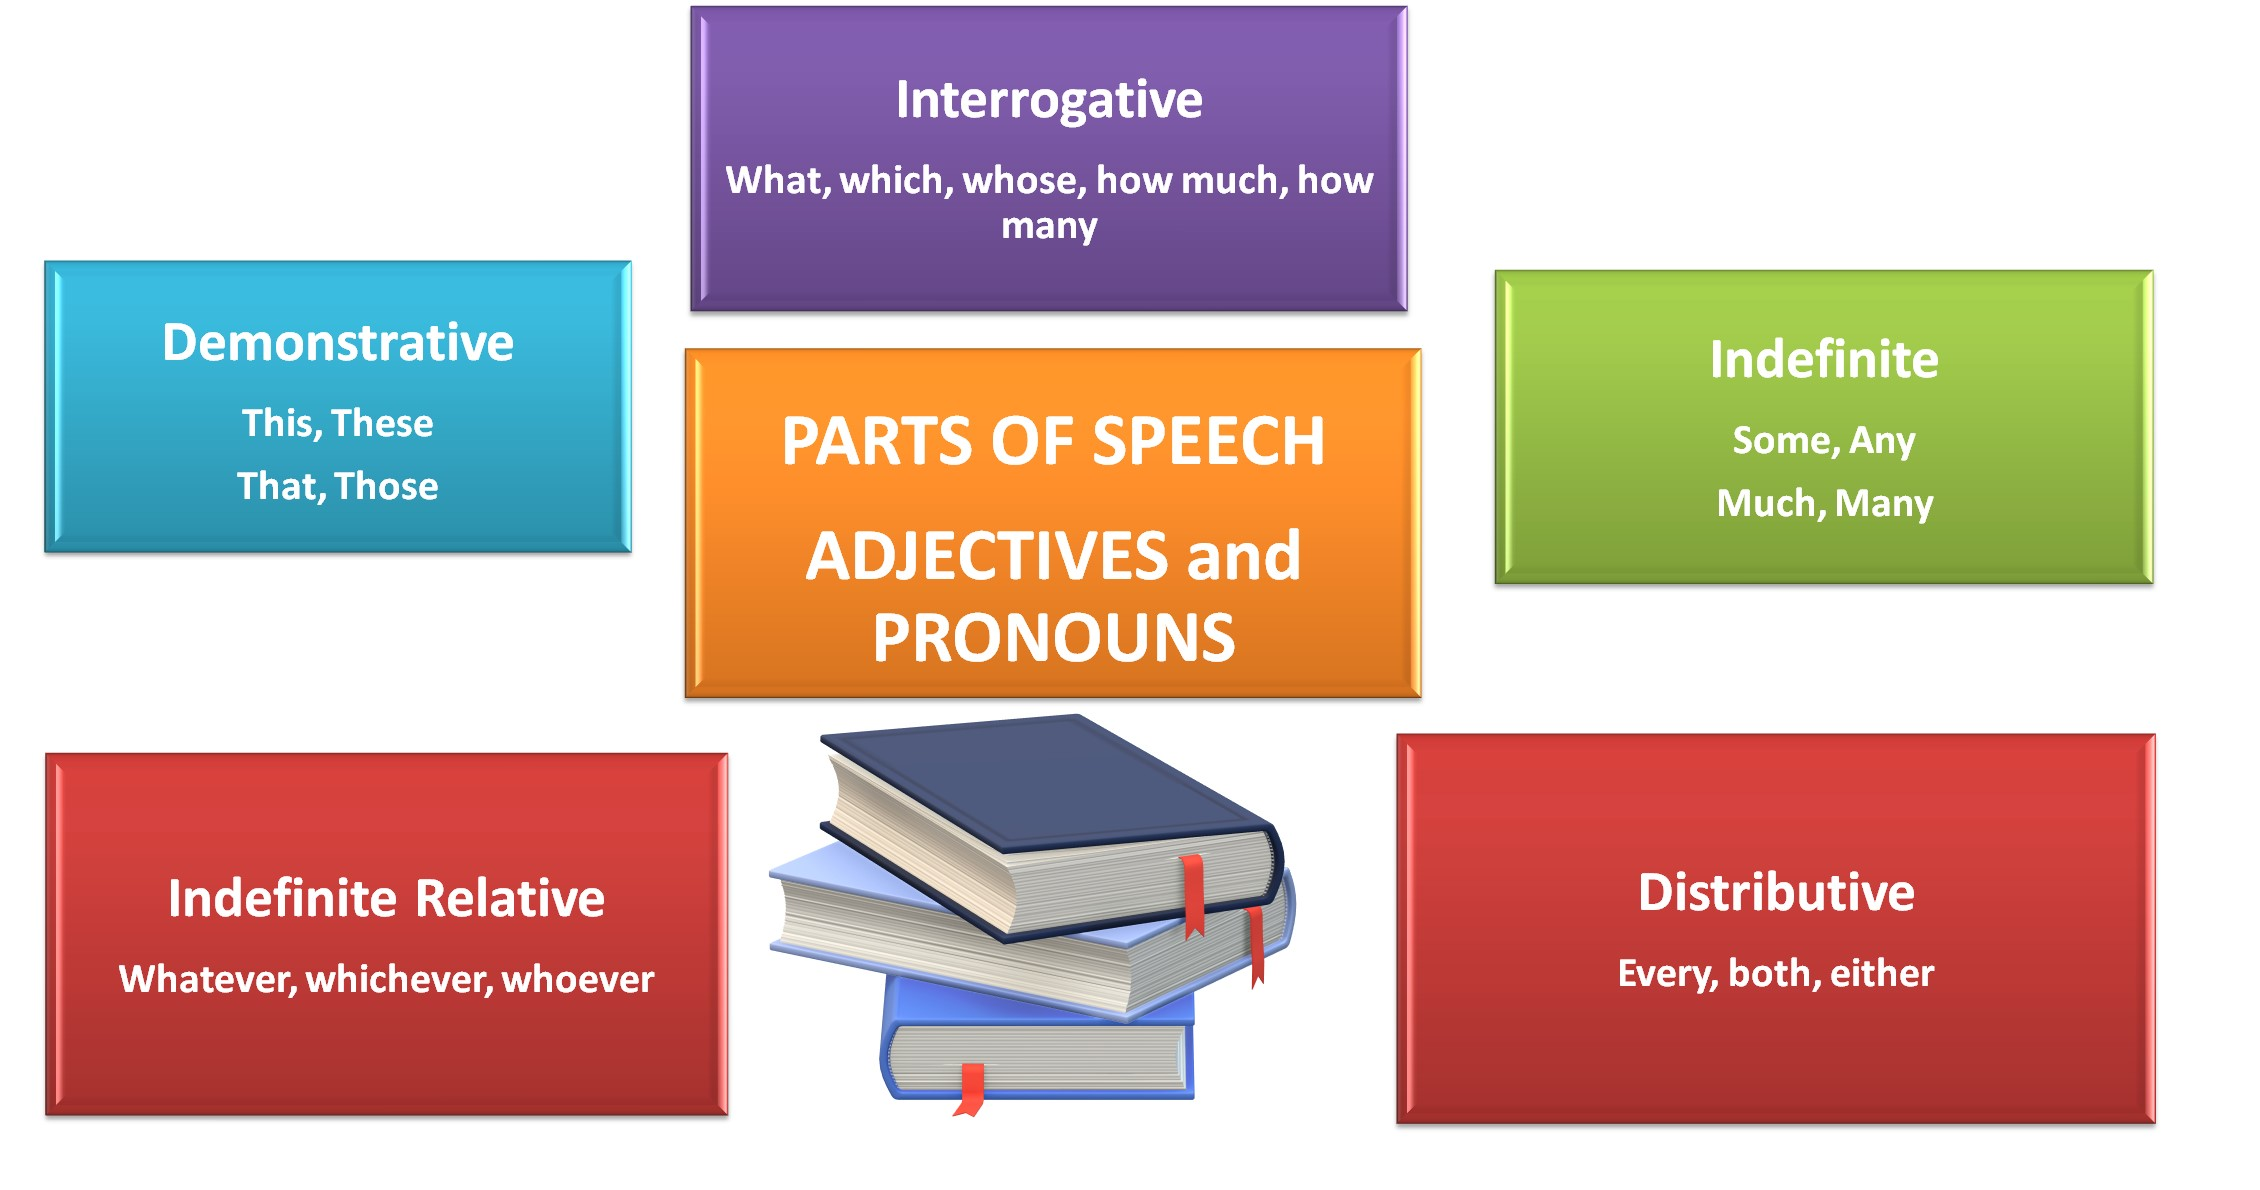 Parts of Speech - Adjectives and Pronouns